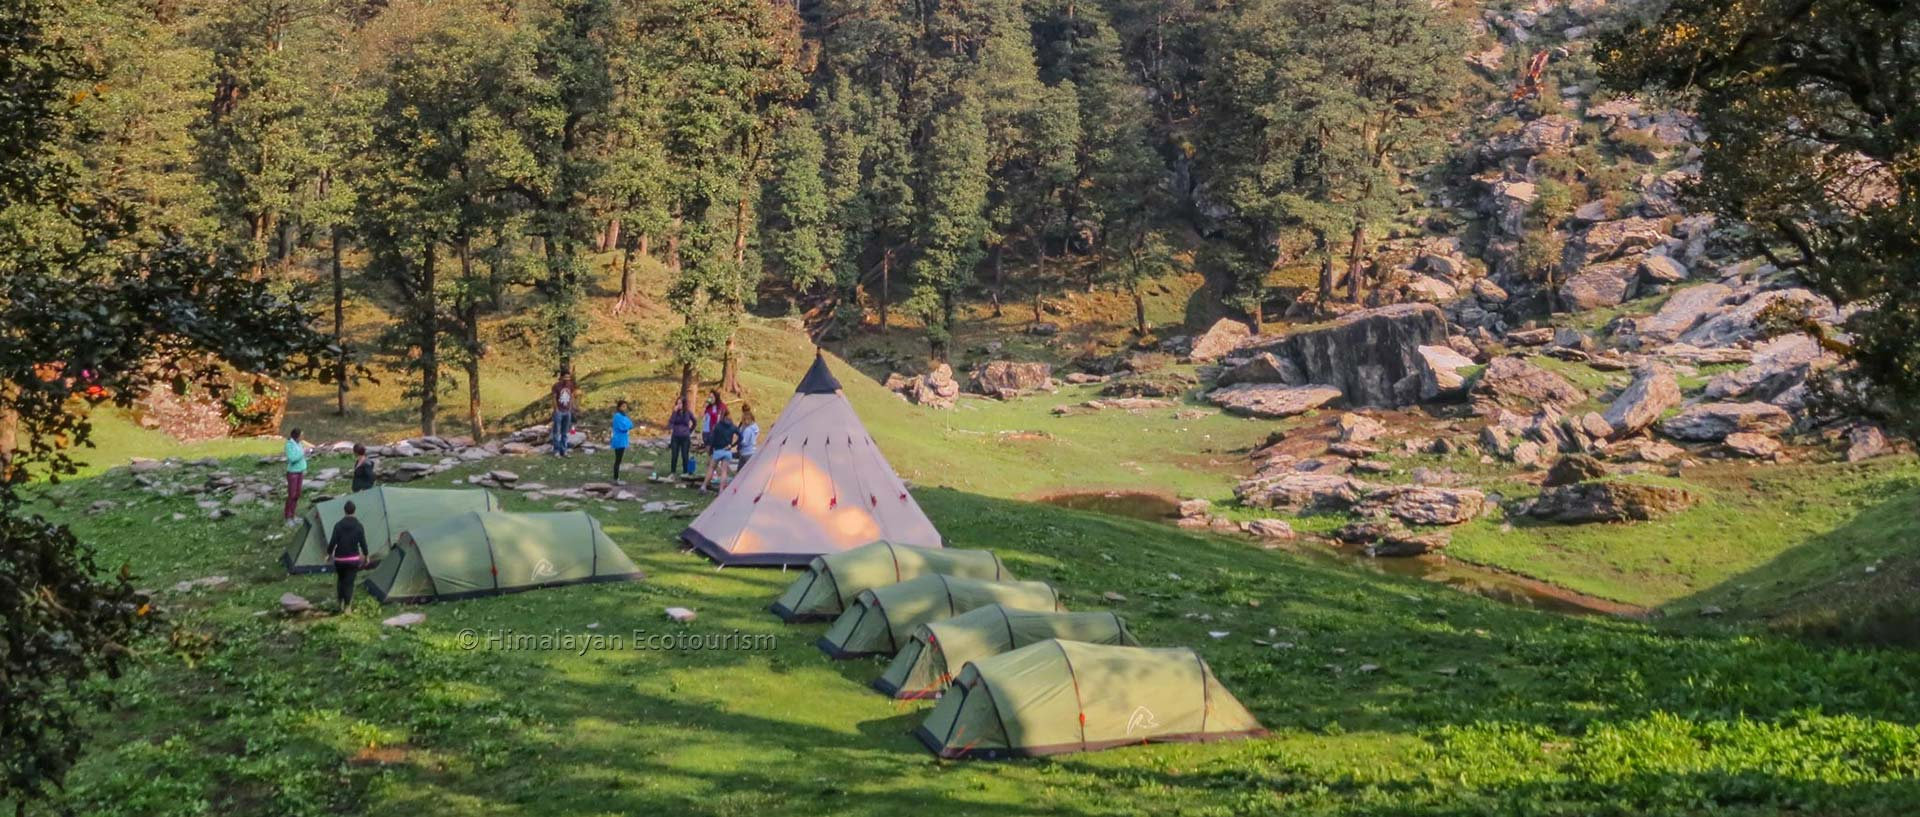 Camp at Serolsar lake, Great Himalayan National Park GHNP